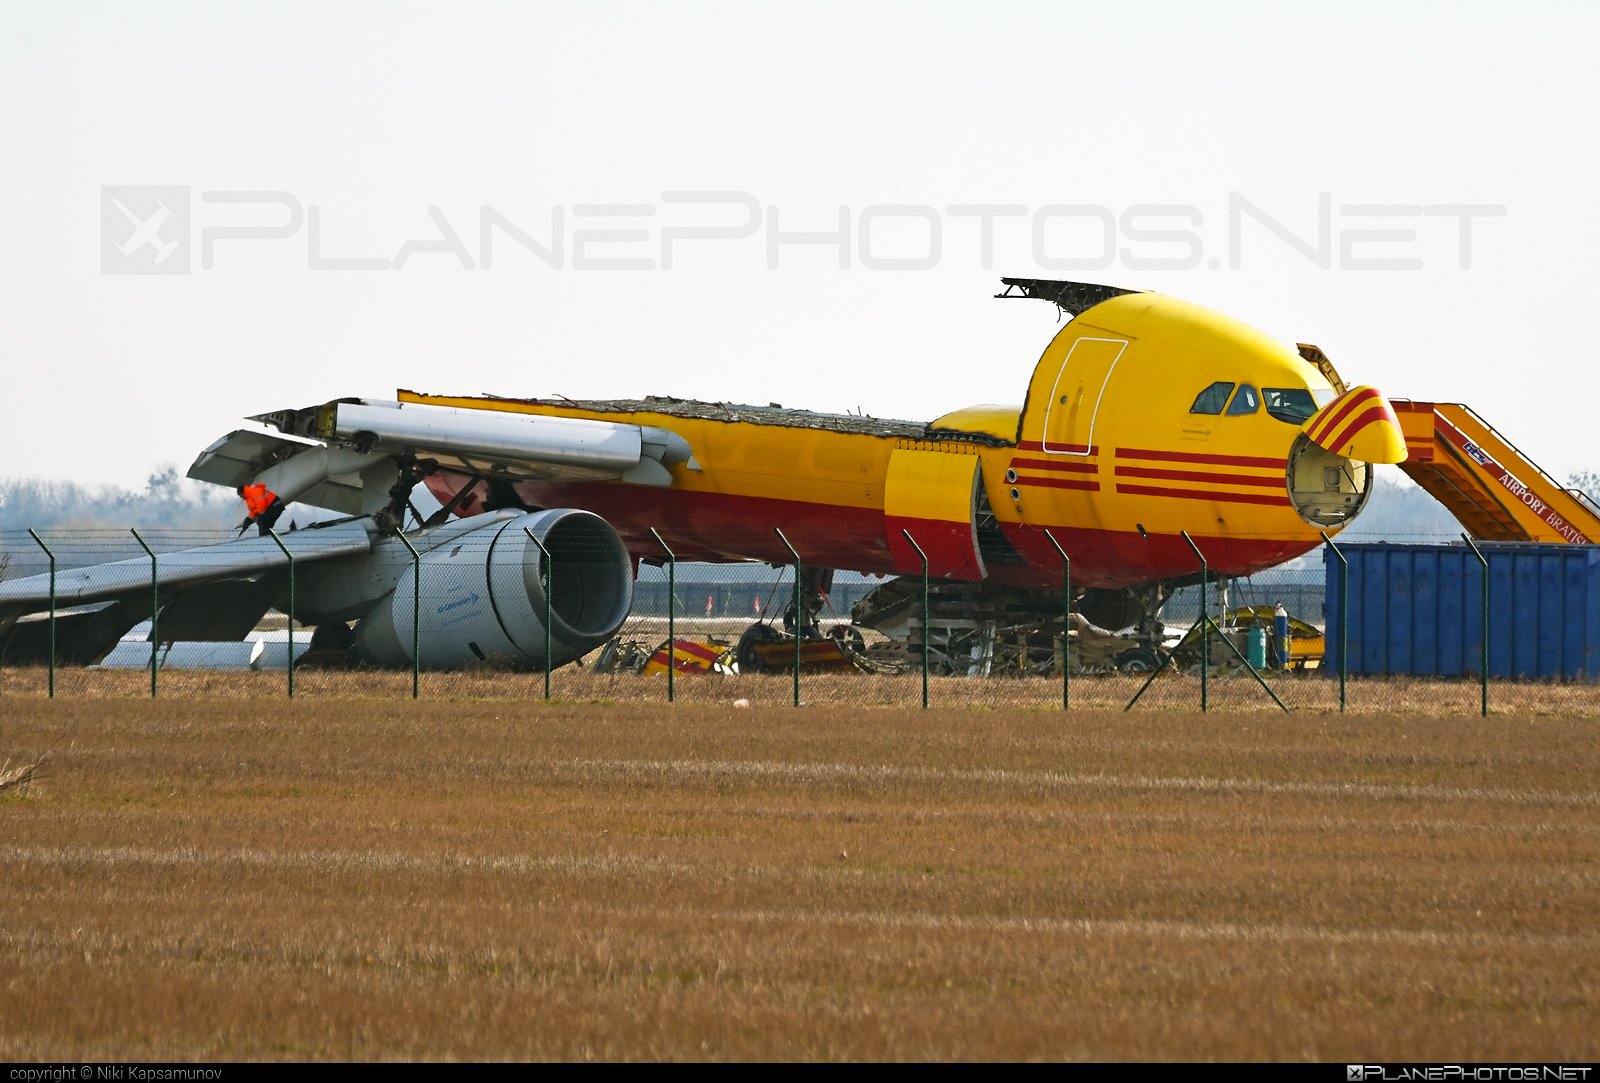 Airbus A300B4-203F - EI-EAC operated by DHL Air #a300 #airbus